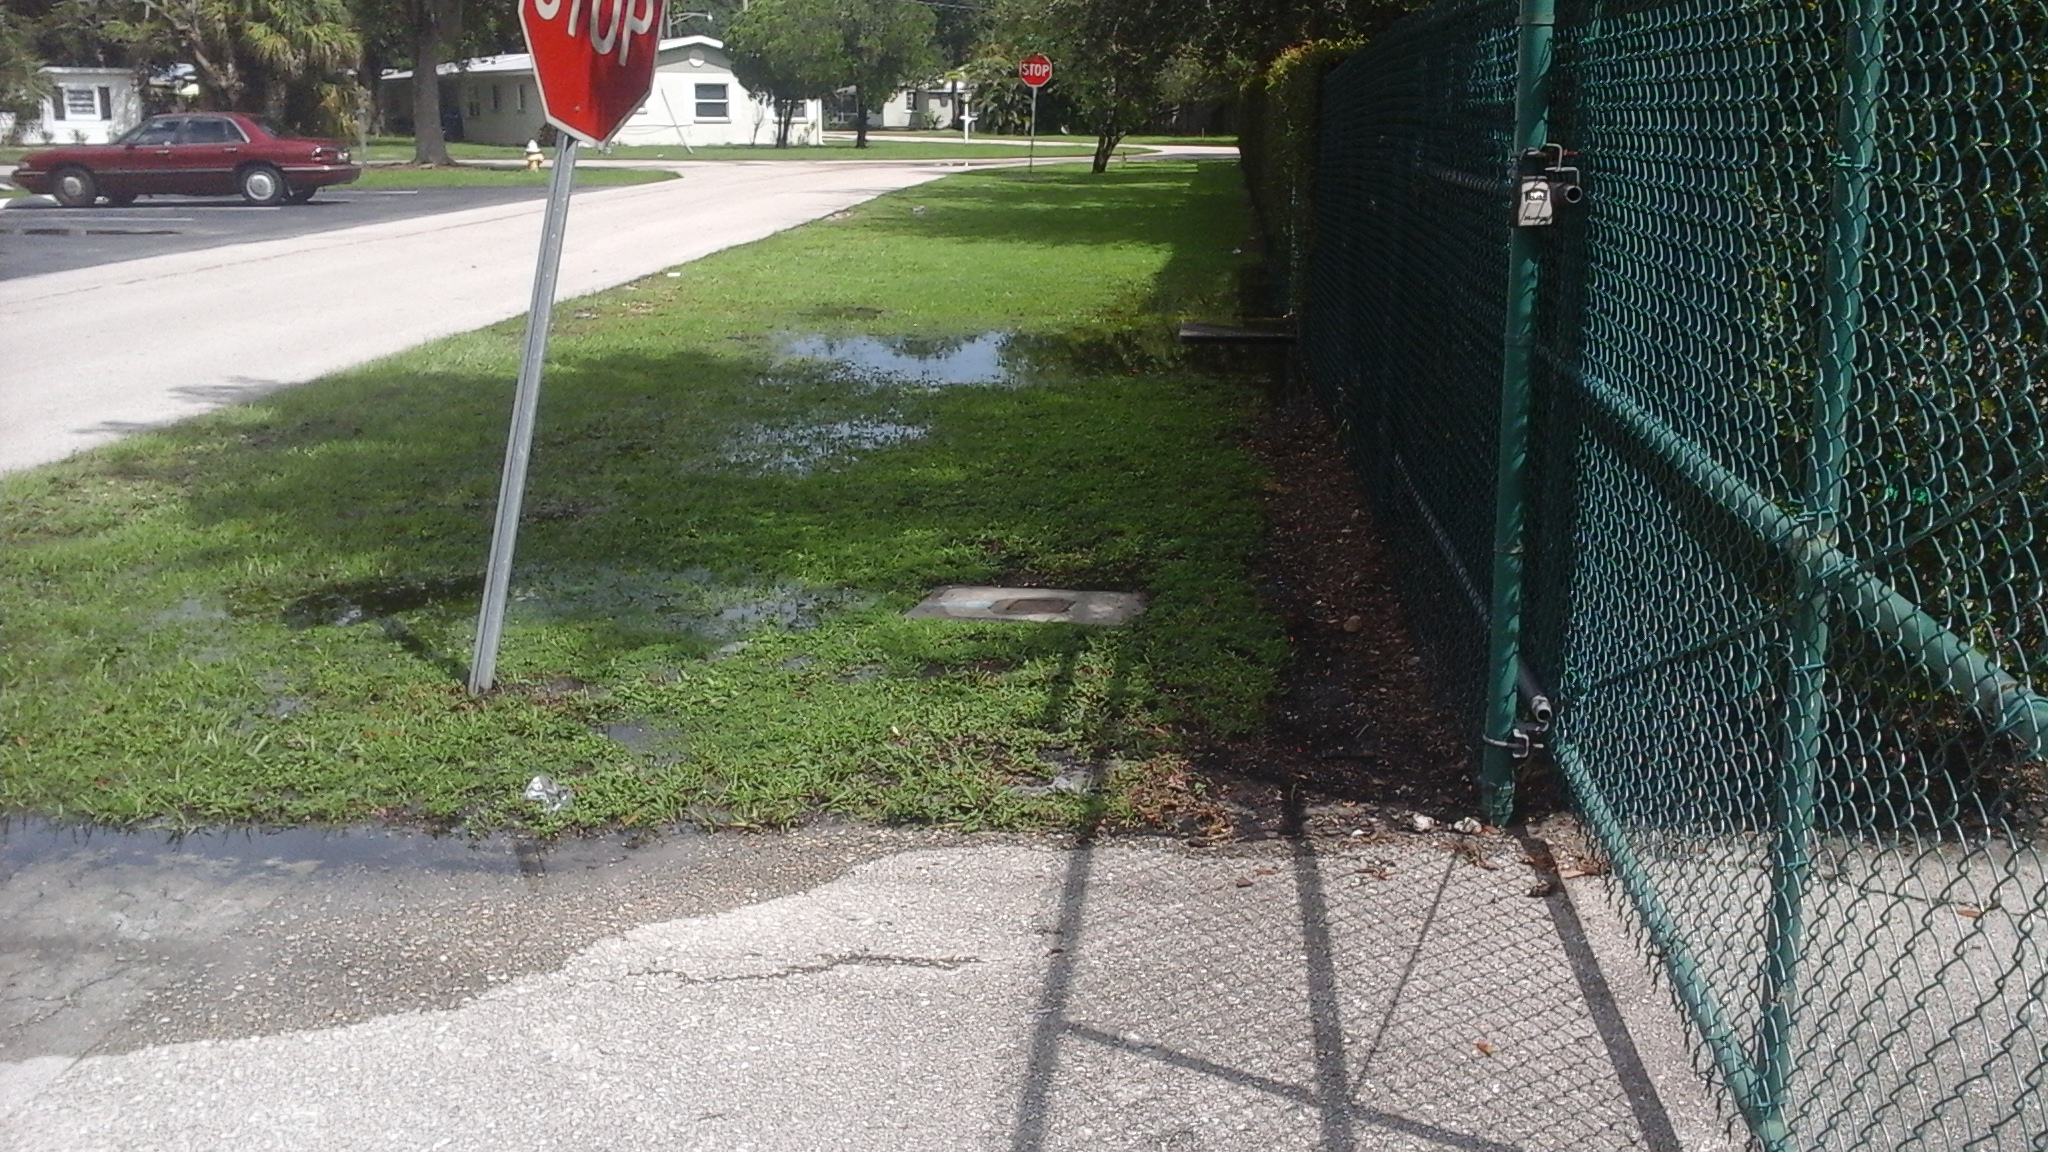 Ground water after Harvey rains.